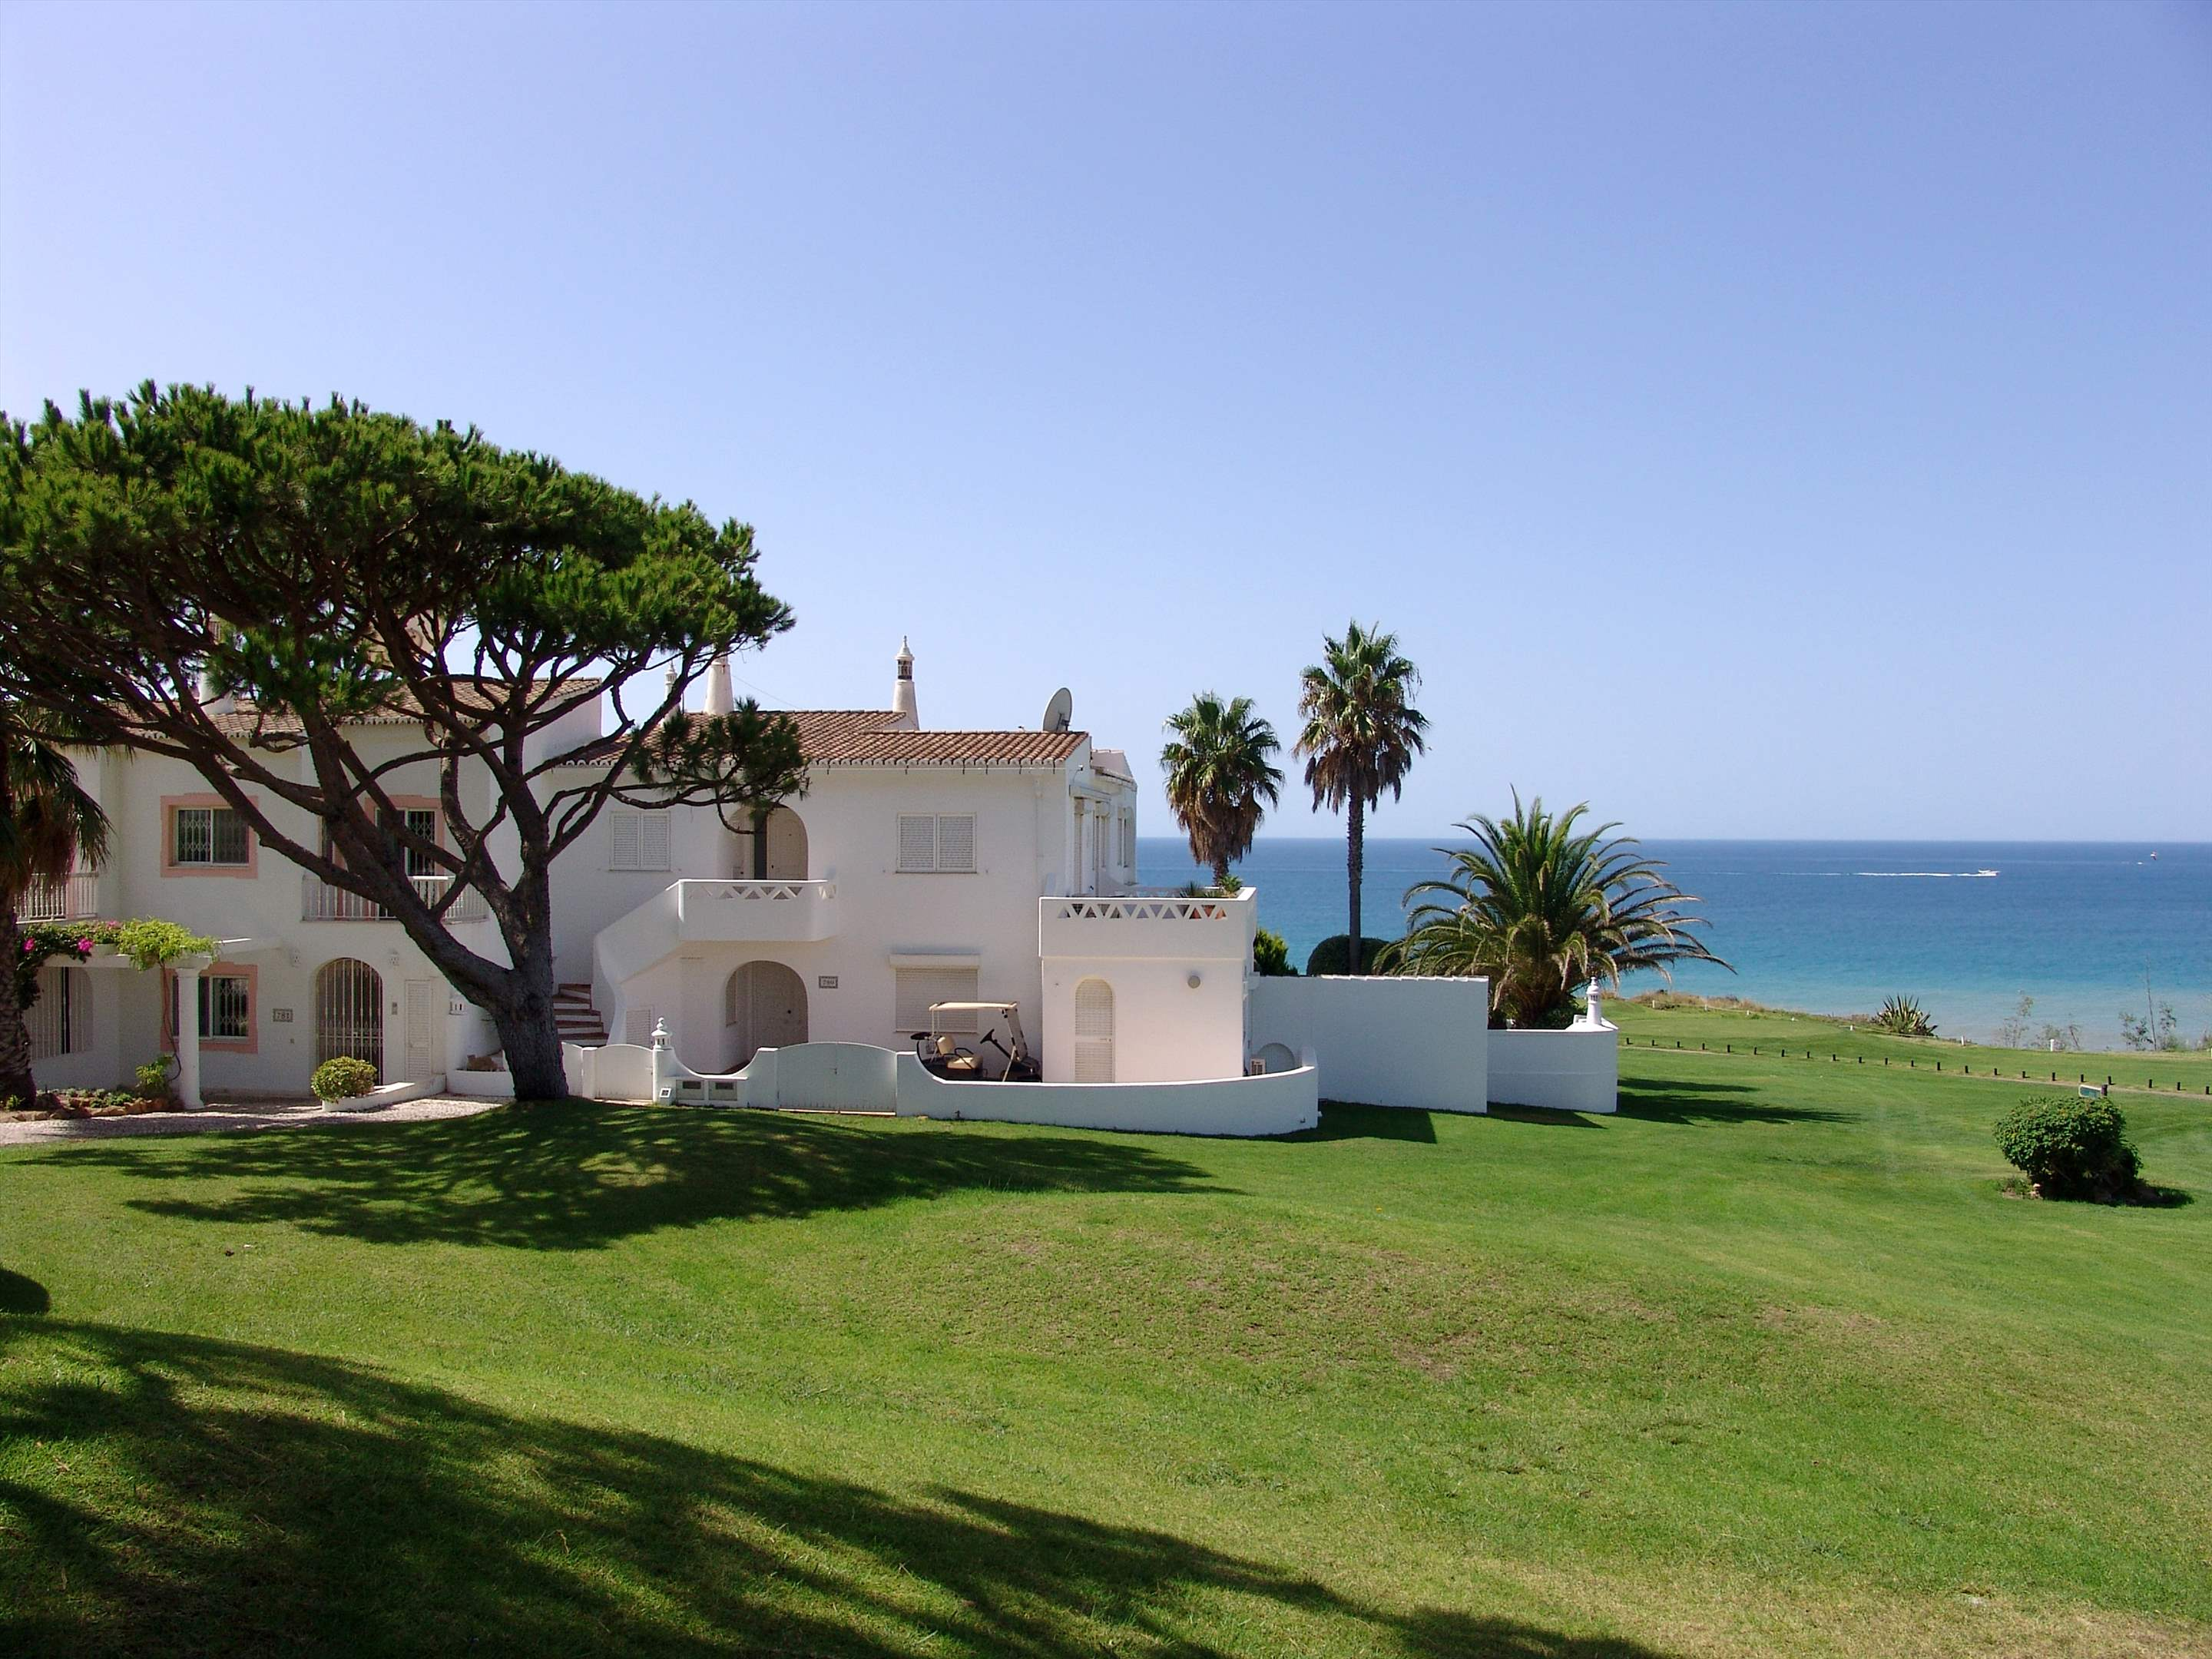 Villas Louisa, 3 bedroom, 3 bedroom villa in Vale do Lobo, Algarve Photo #14